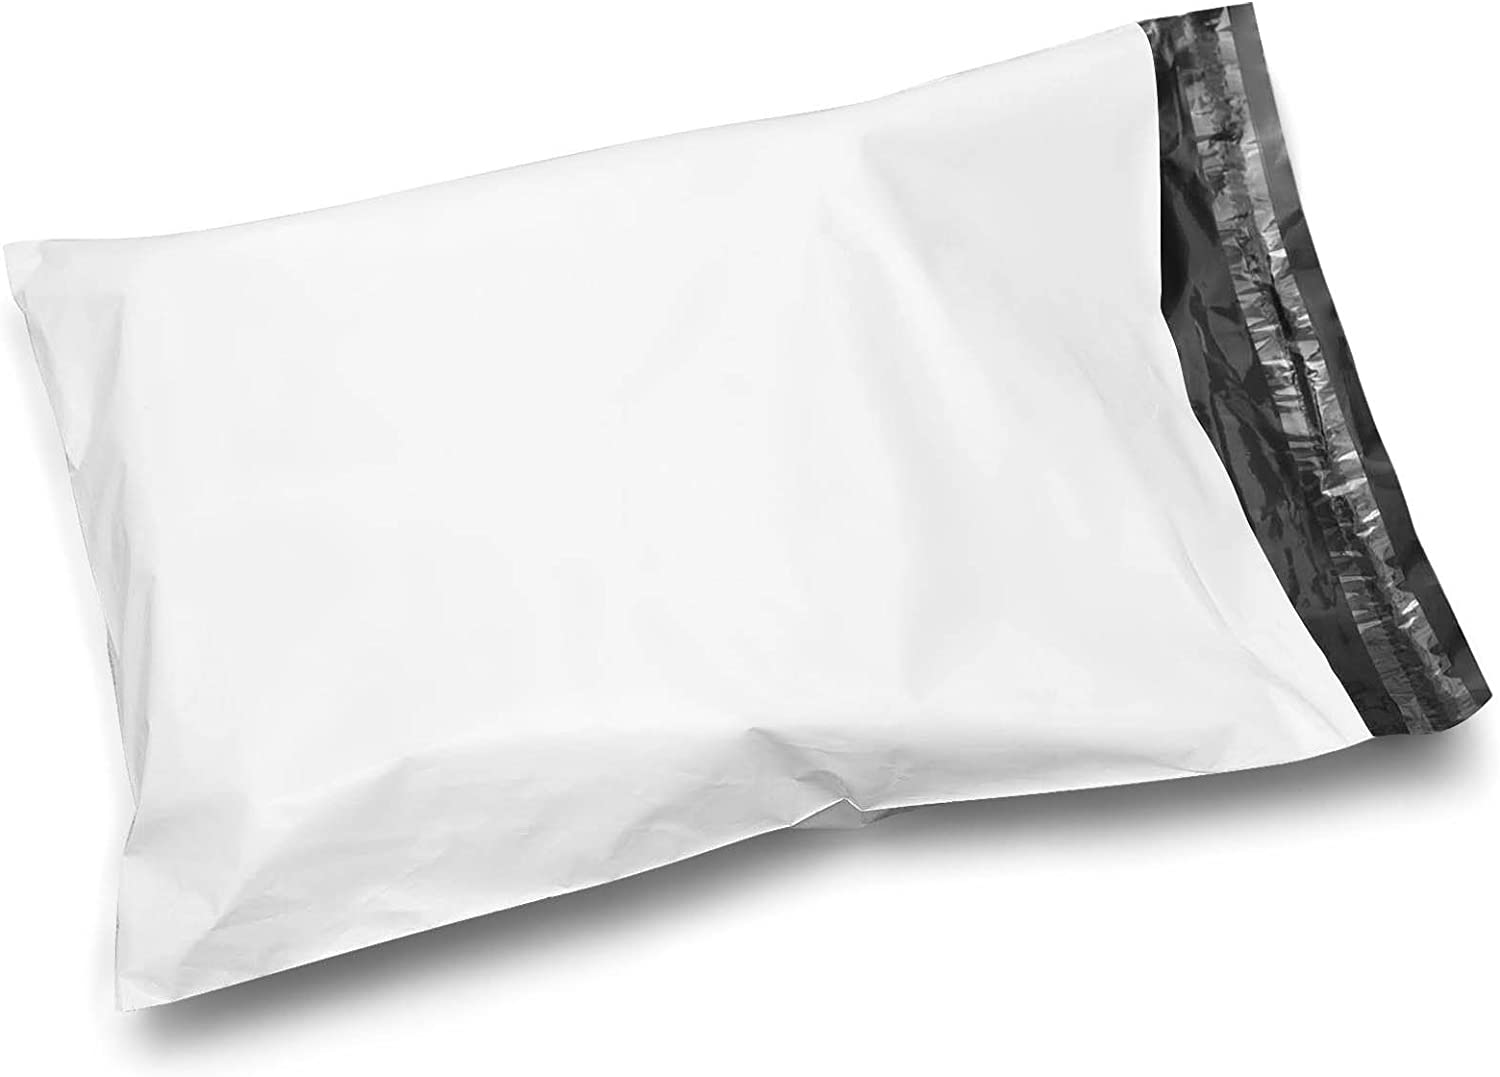 Shop4Mailers 19 x 24 Glossy White Poly Bag Mailer Envelopes 2 Mil (50 Pack)